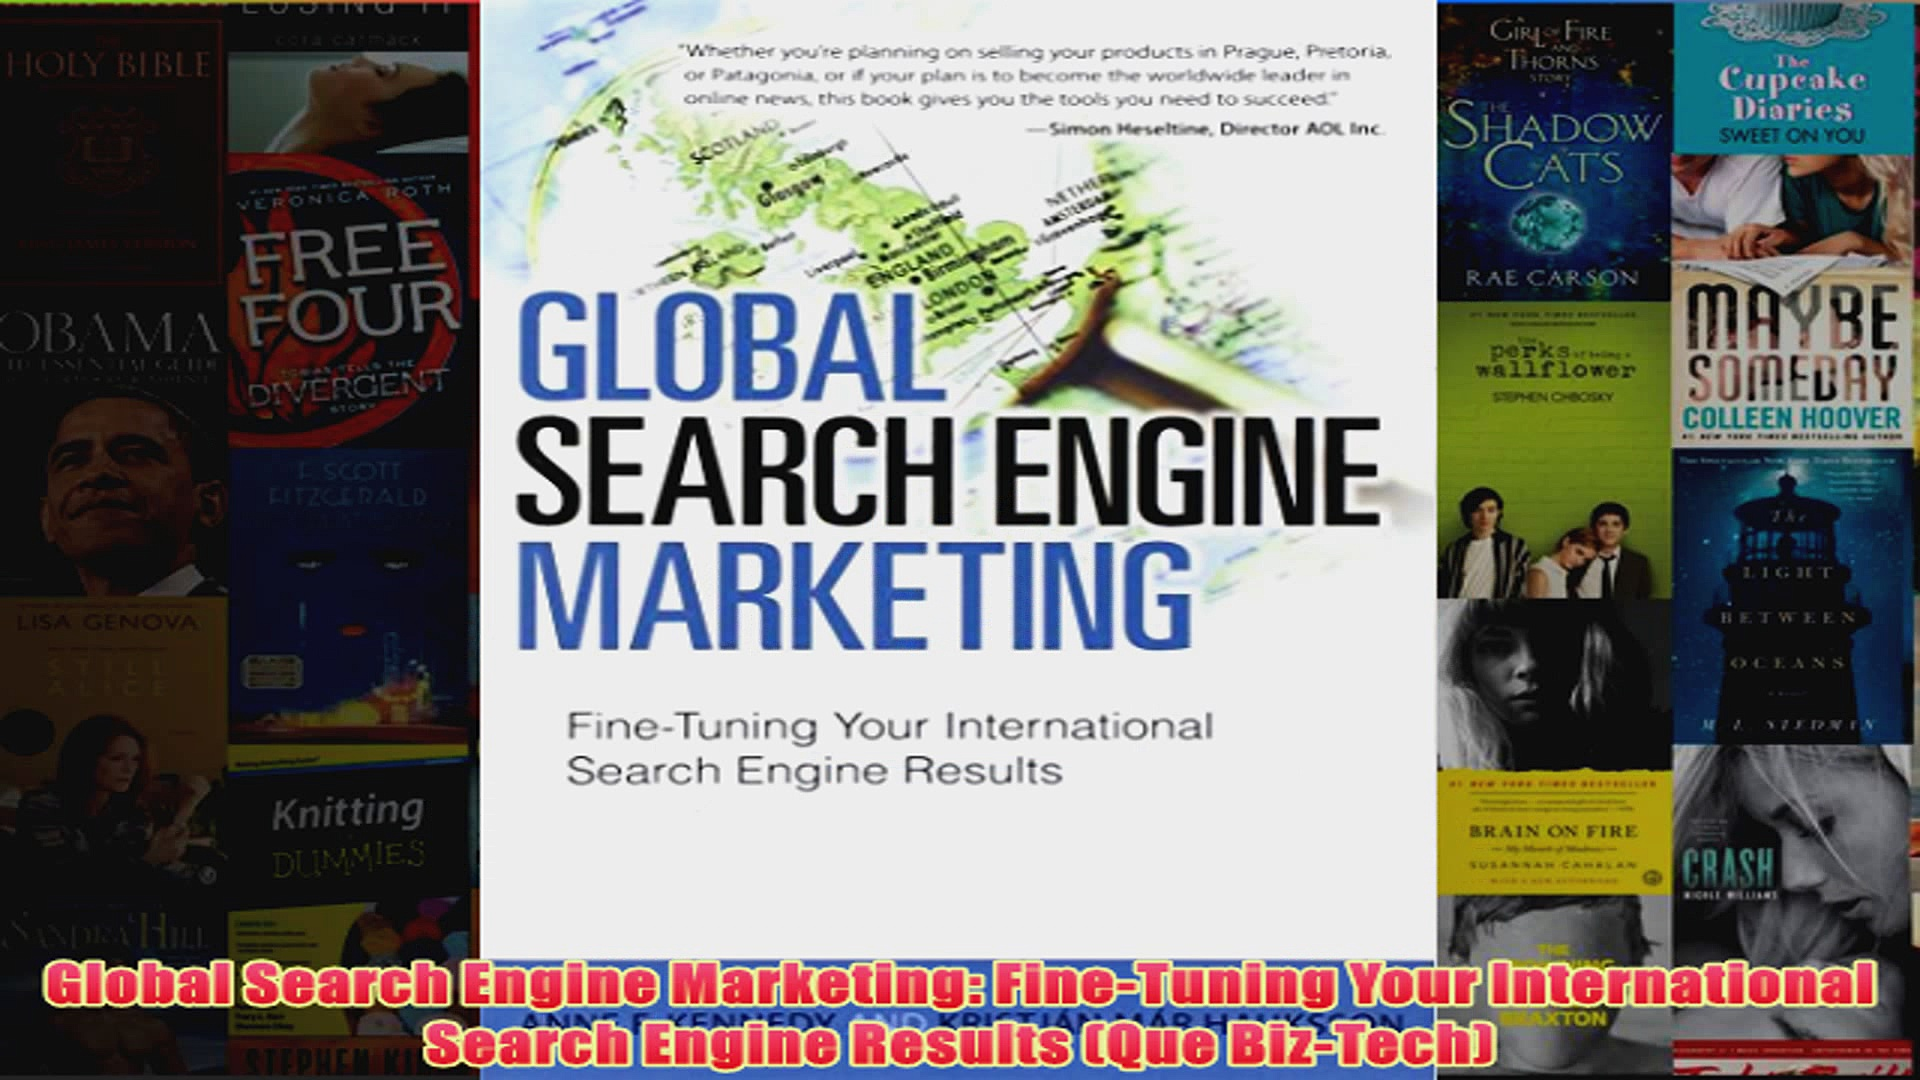 Download PDF  Global Search Engine Marketing FineTuning Your International Search Engine Results Que FULL FREE